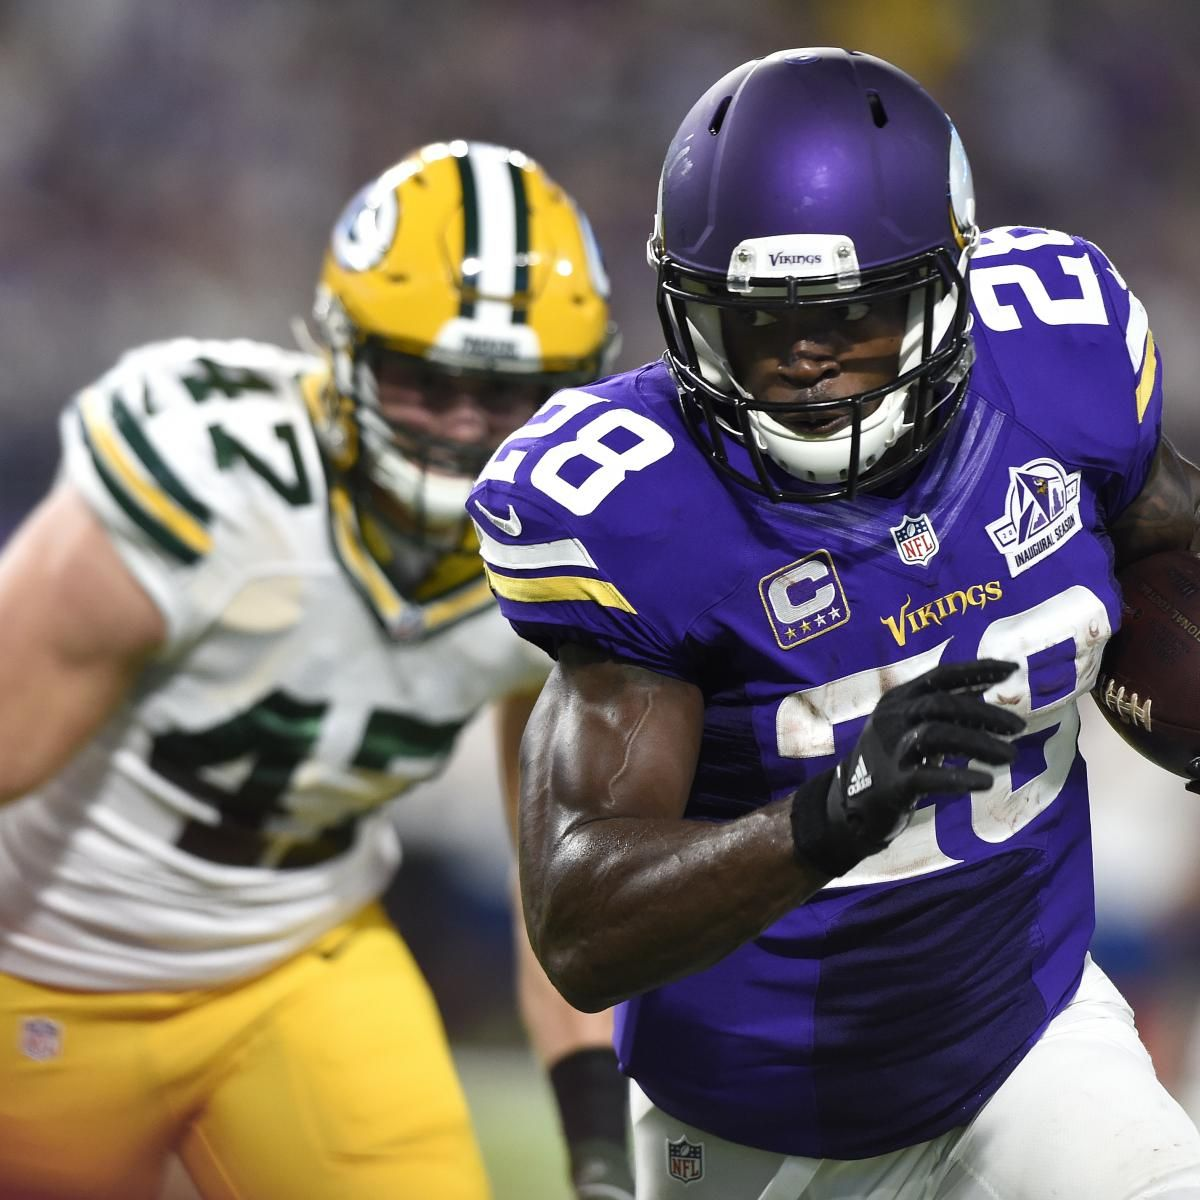 Adrian Peterson Signs 2 Year Contract With Saints After Leaving Vikings Minnesota Vikings Game Football Helmets Vikings